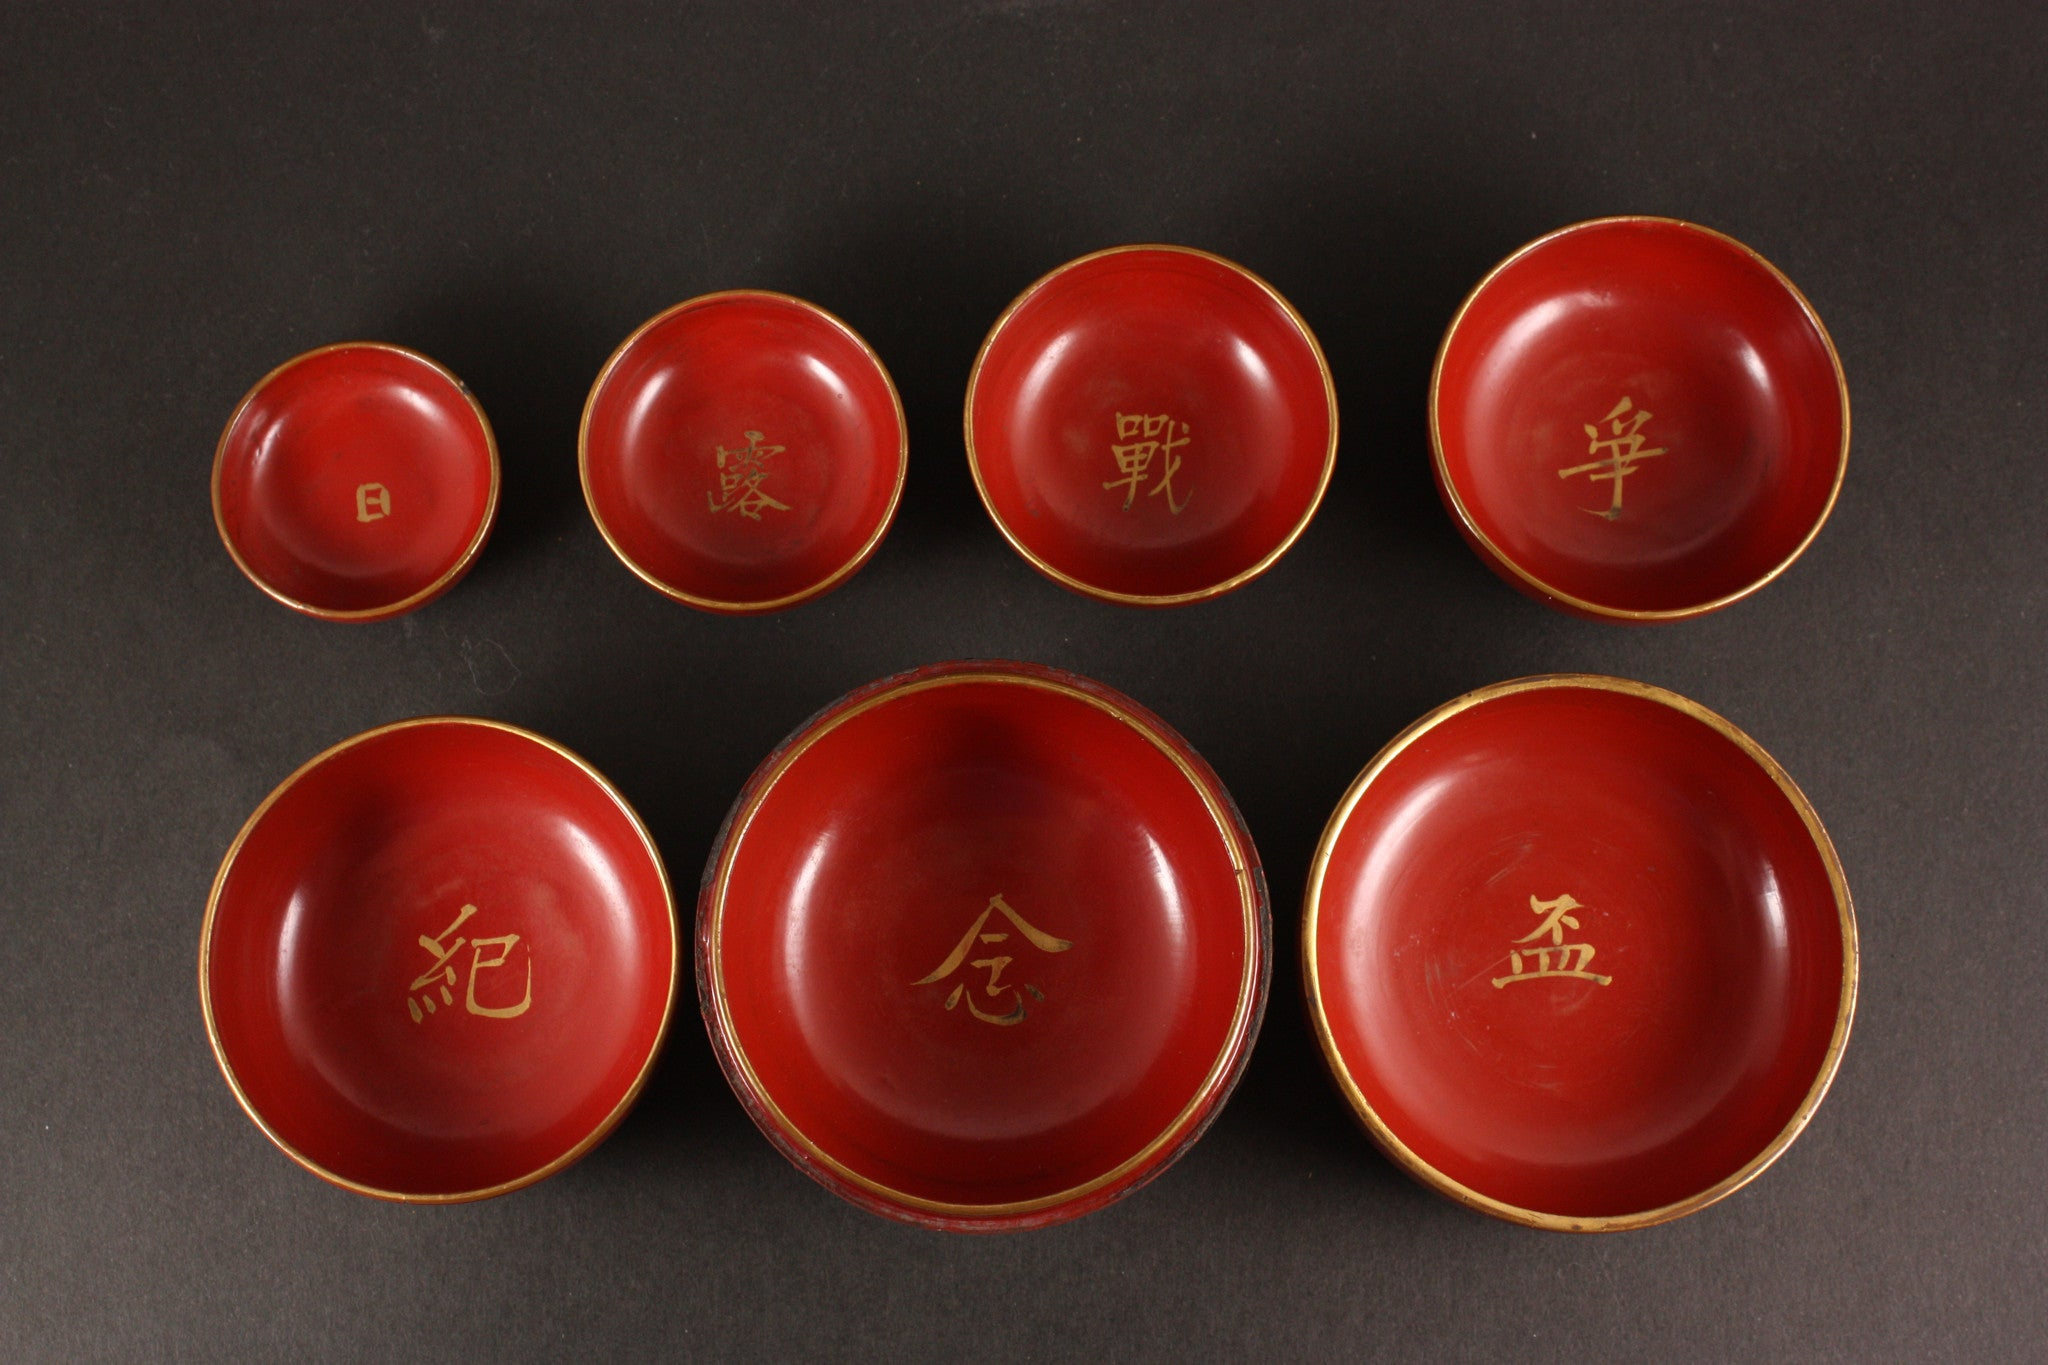 Very Rare Russo Japanese Wall Matryoshka Doll Lacquer Sake Cup Set